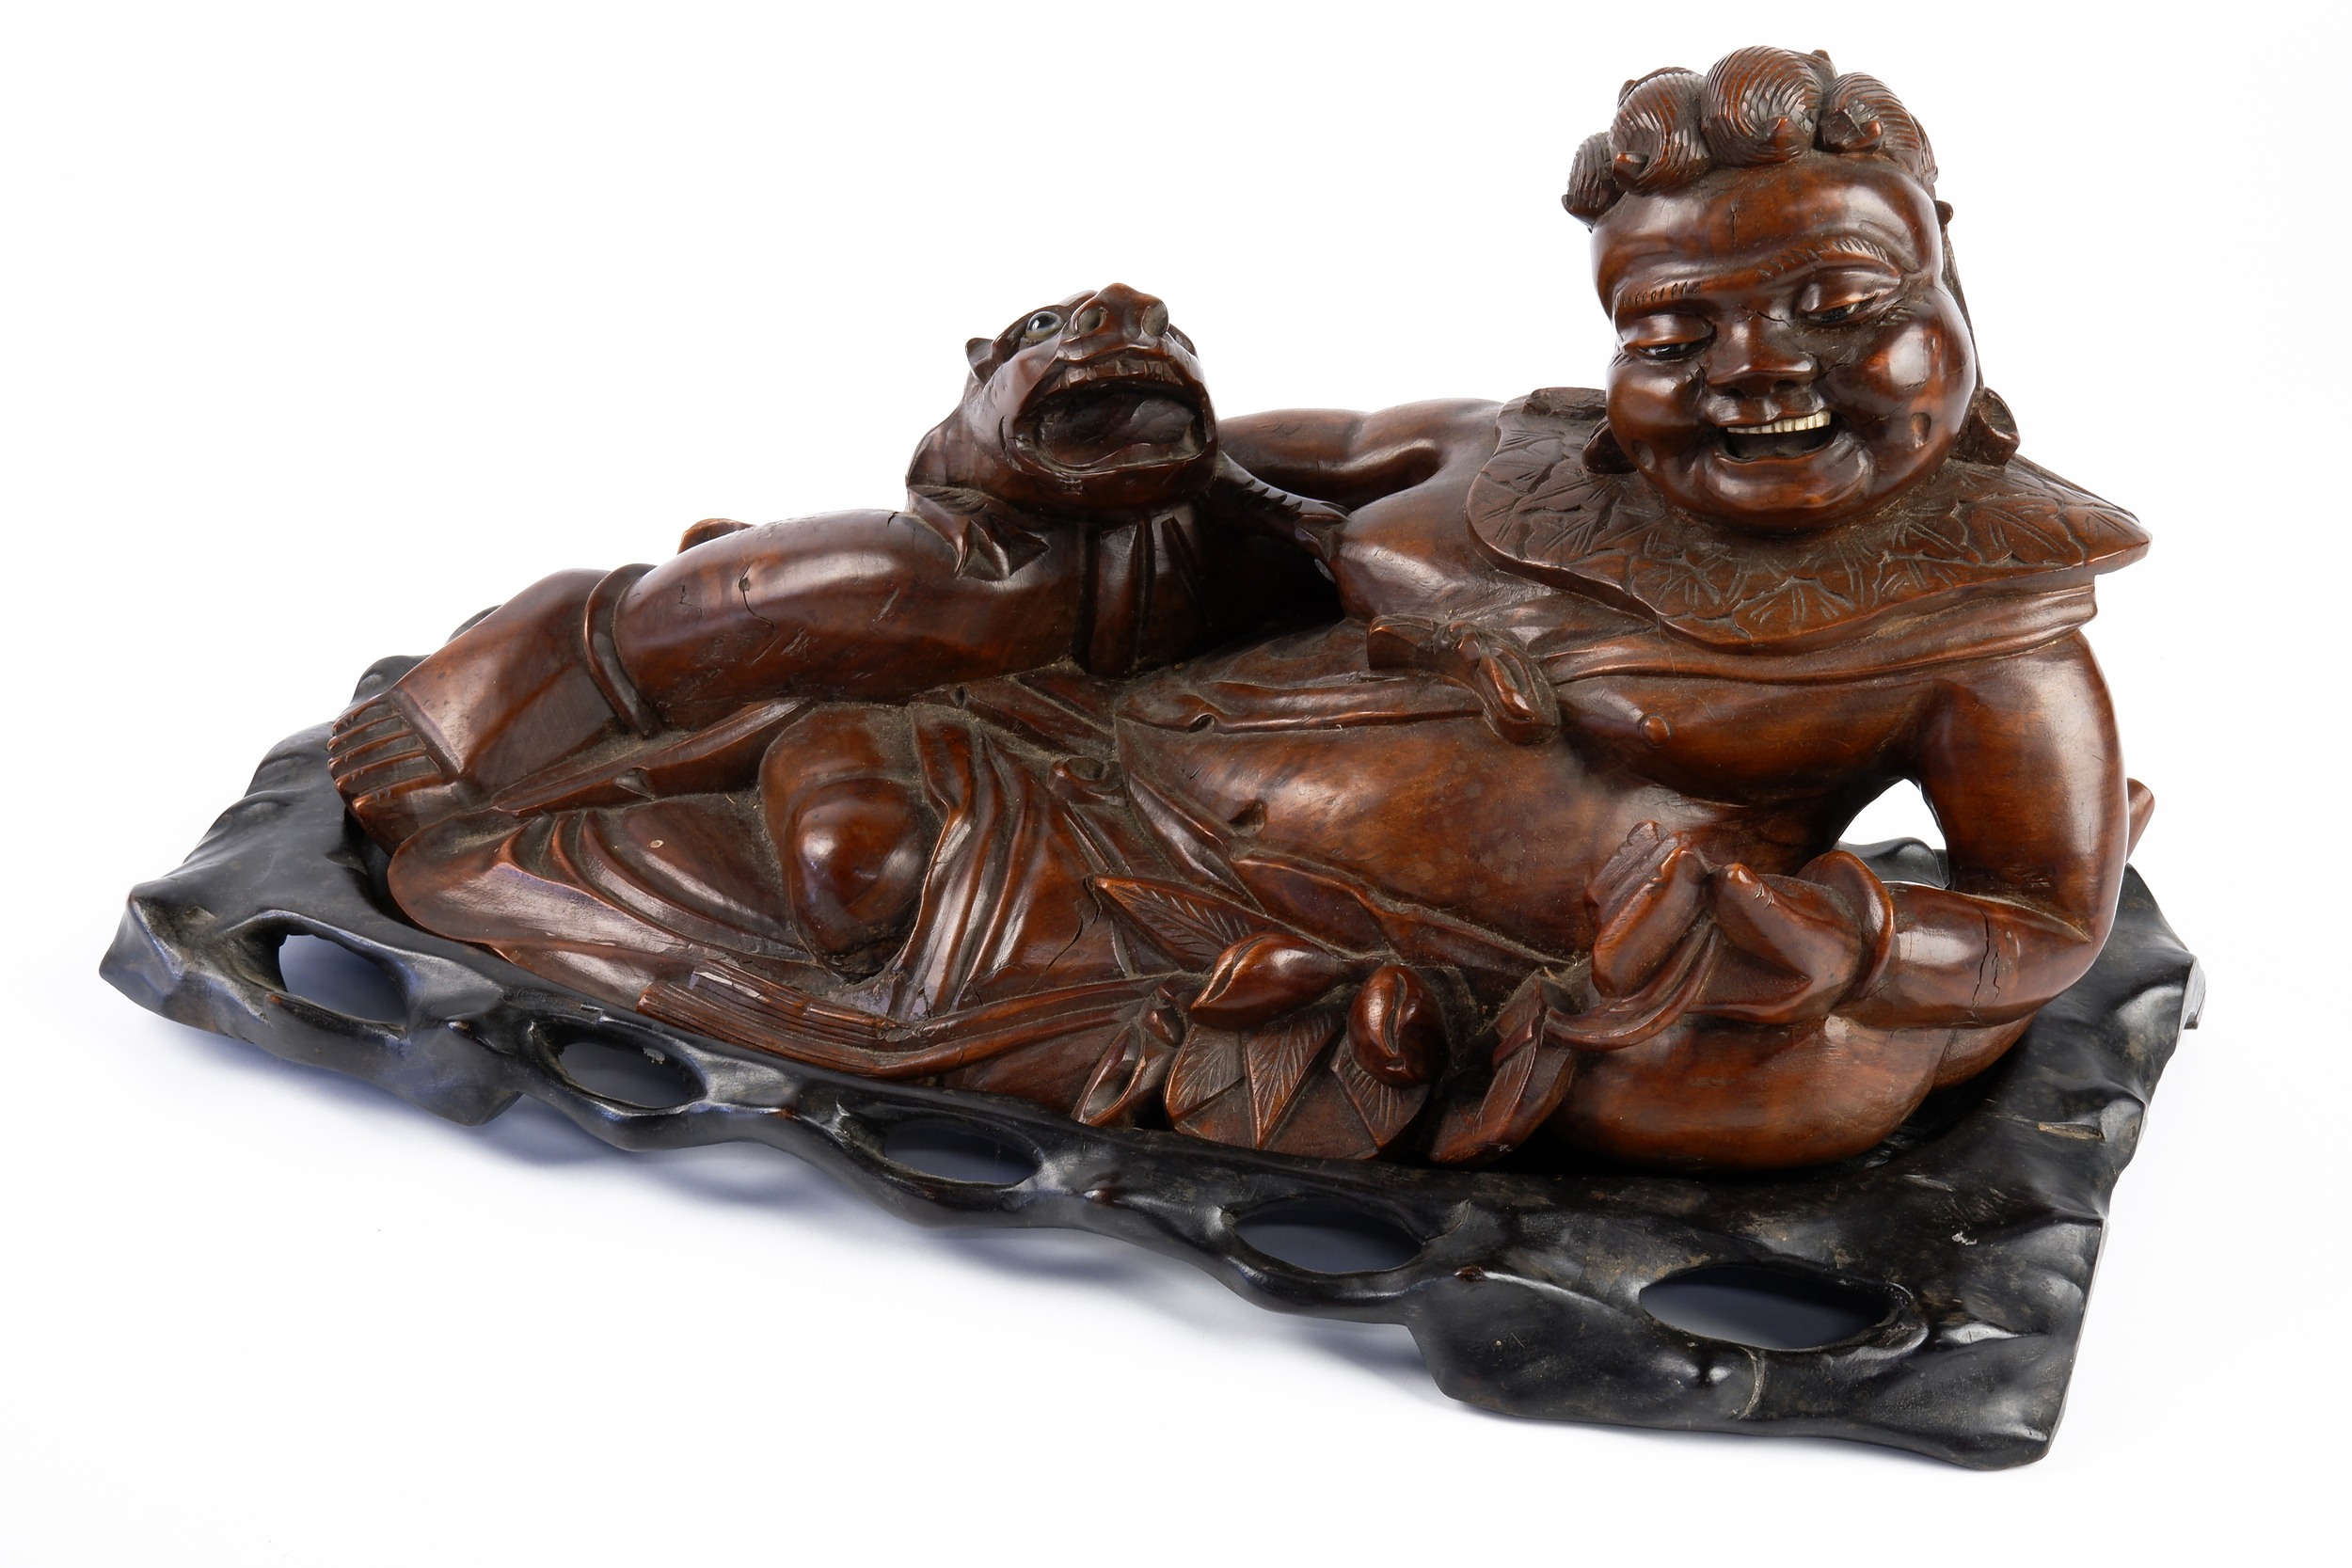 'Large Antique Chinese Hardwood Carving of a Reclining Sage, Late 19th to Early 20th Century'